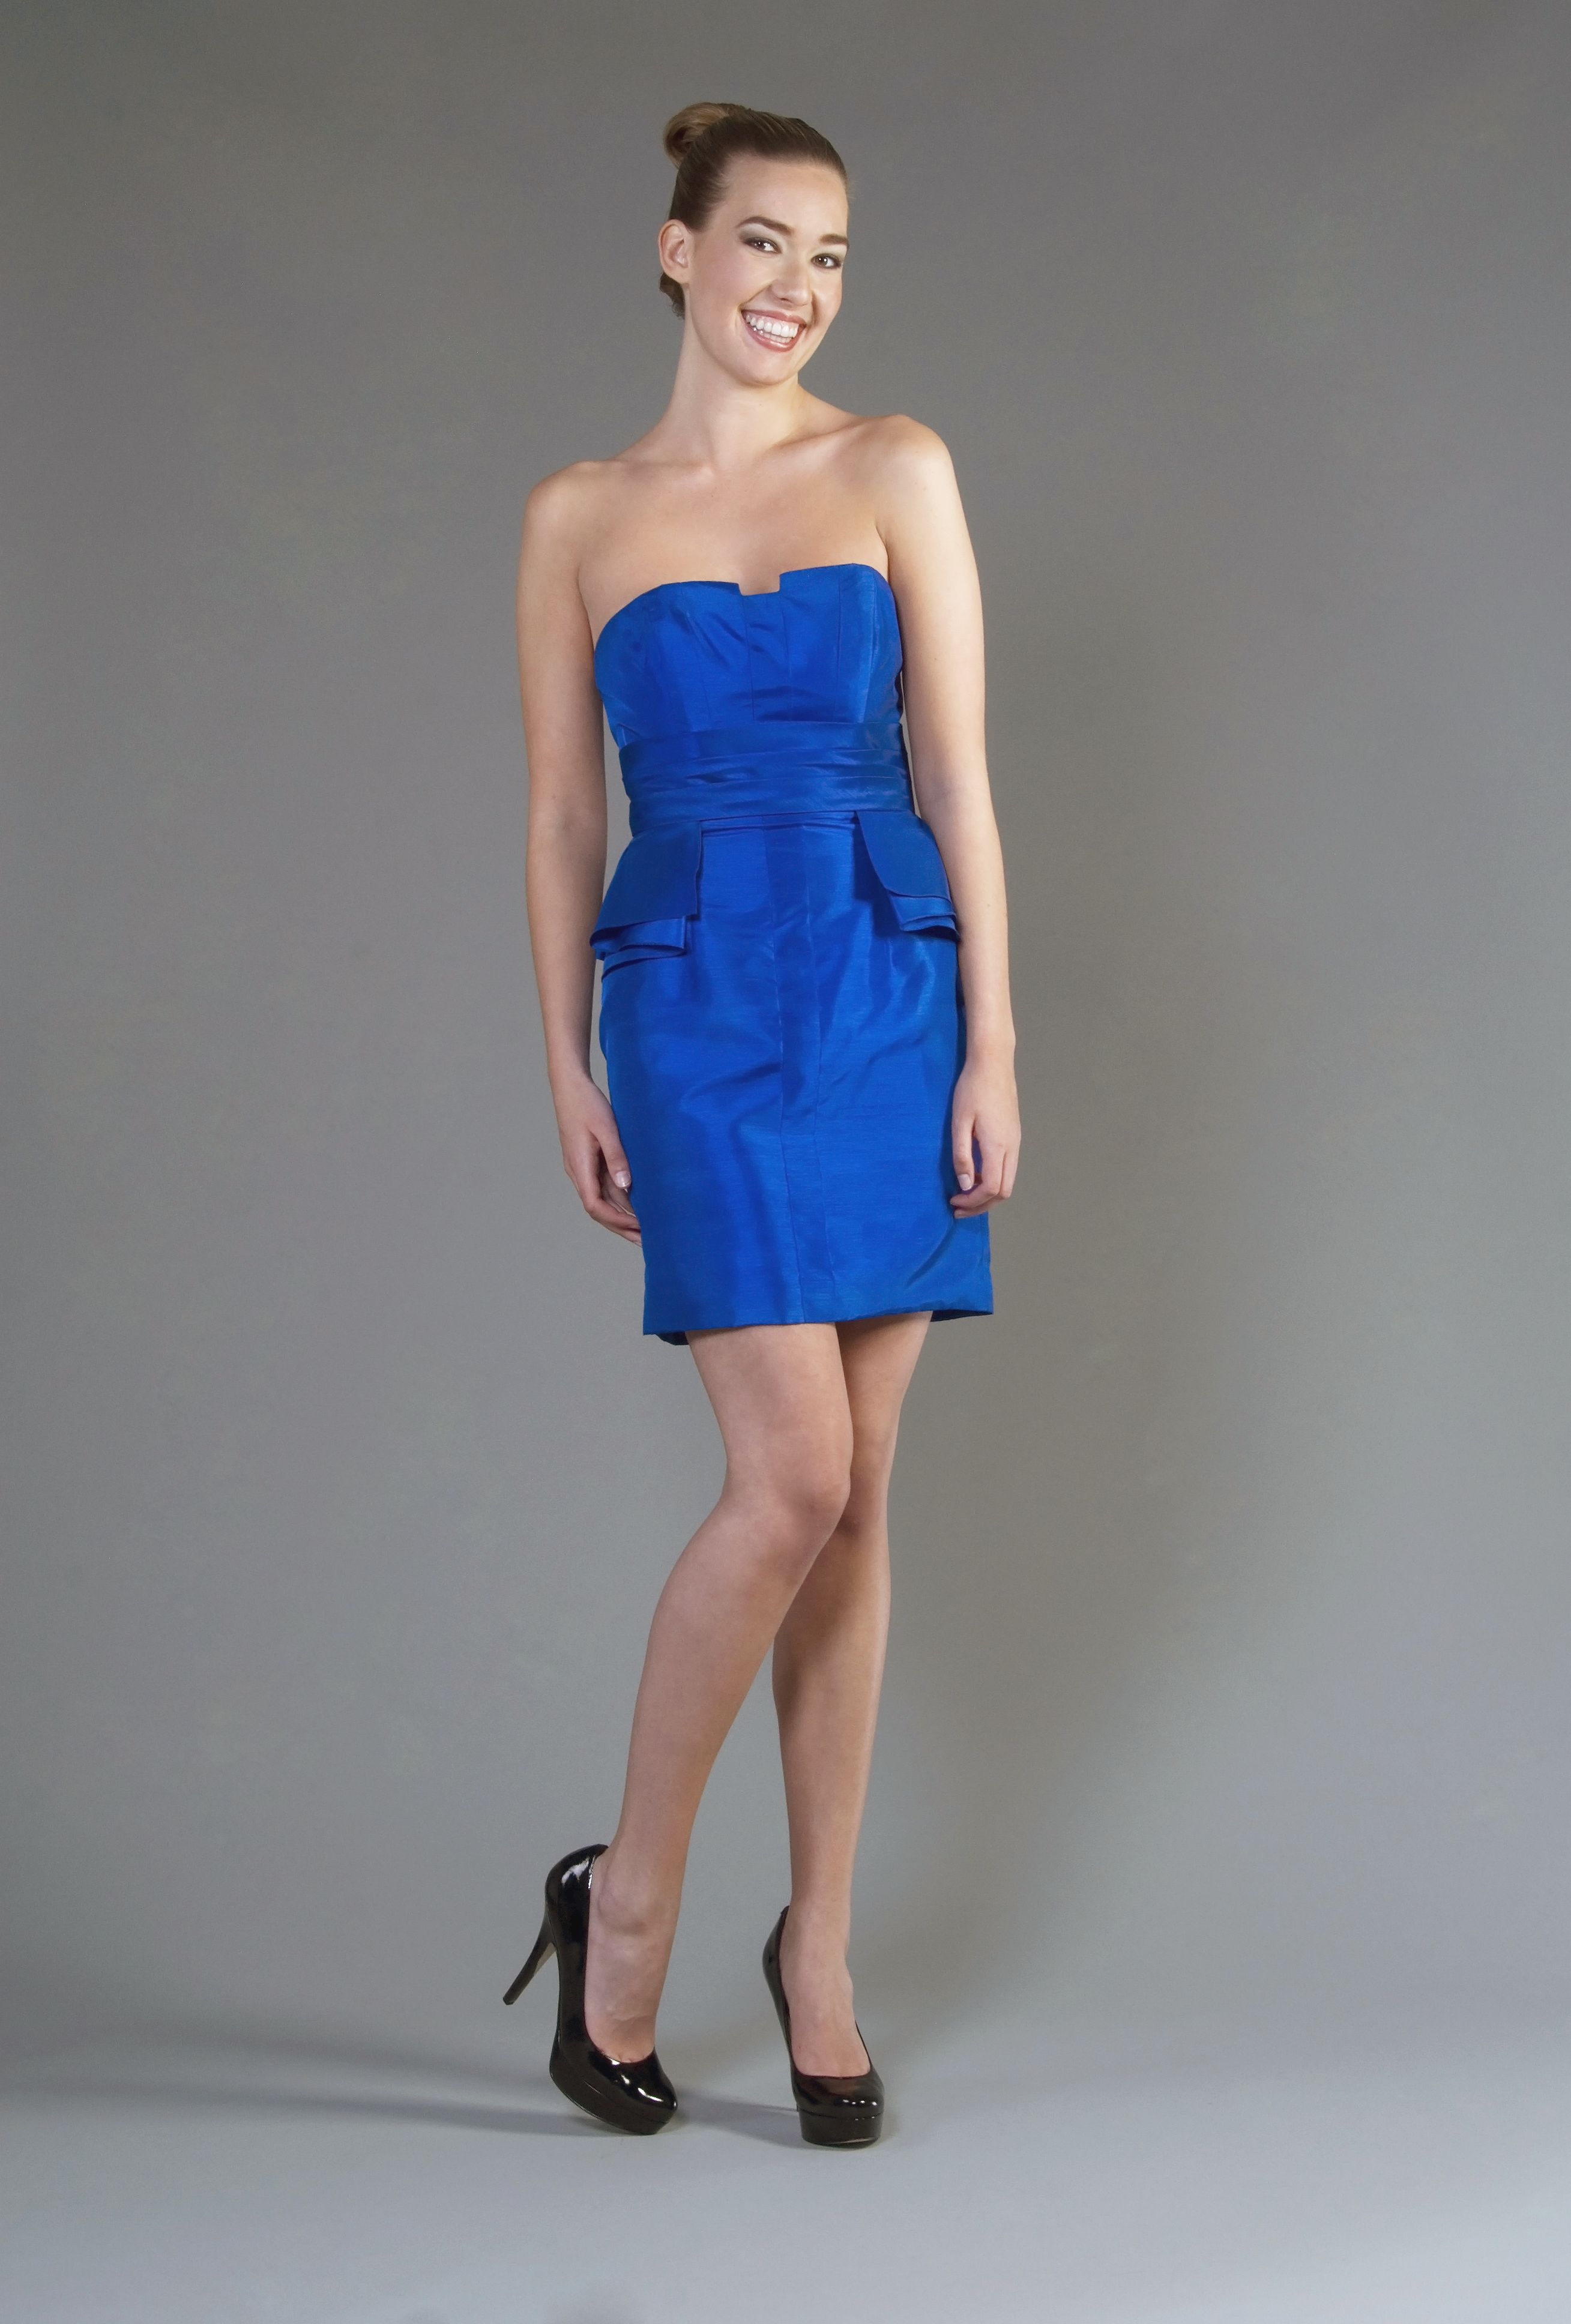 Added details for the skirt on this vibrant blue bridesmaid dress